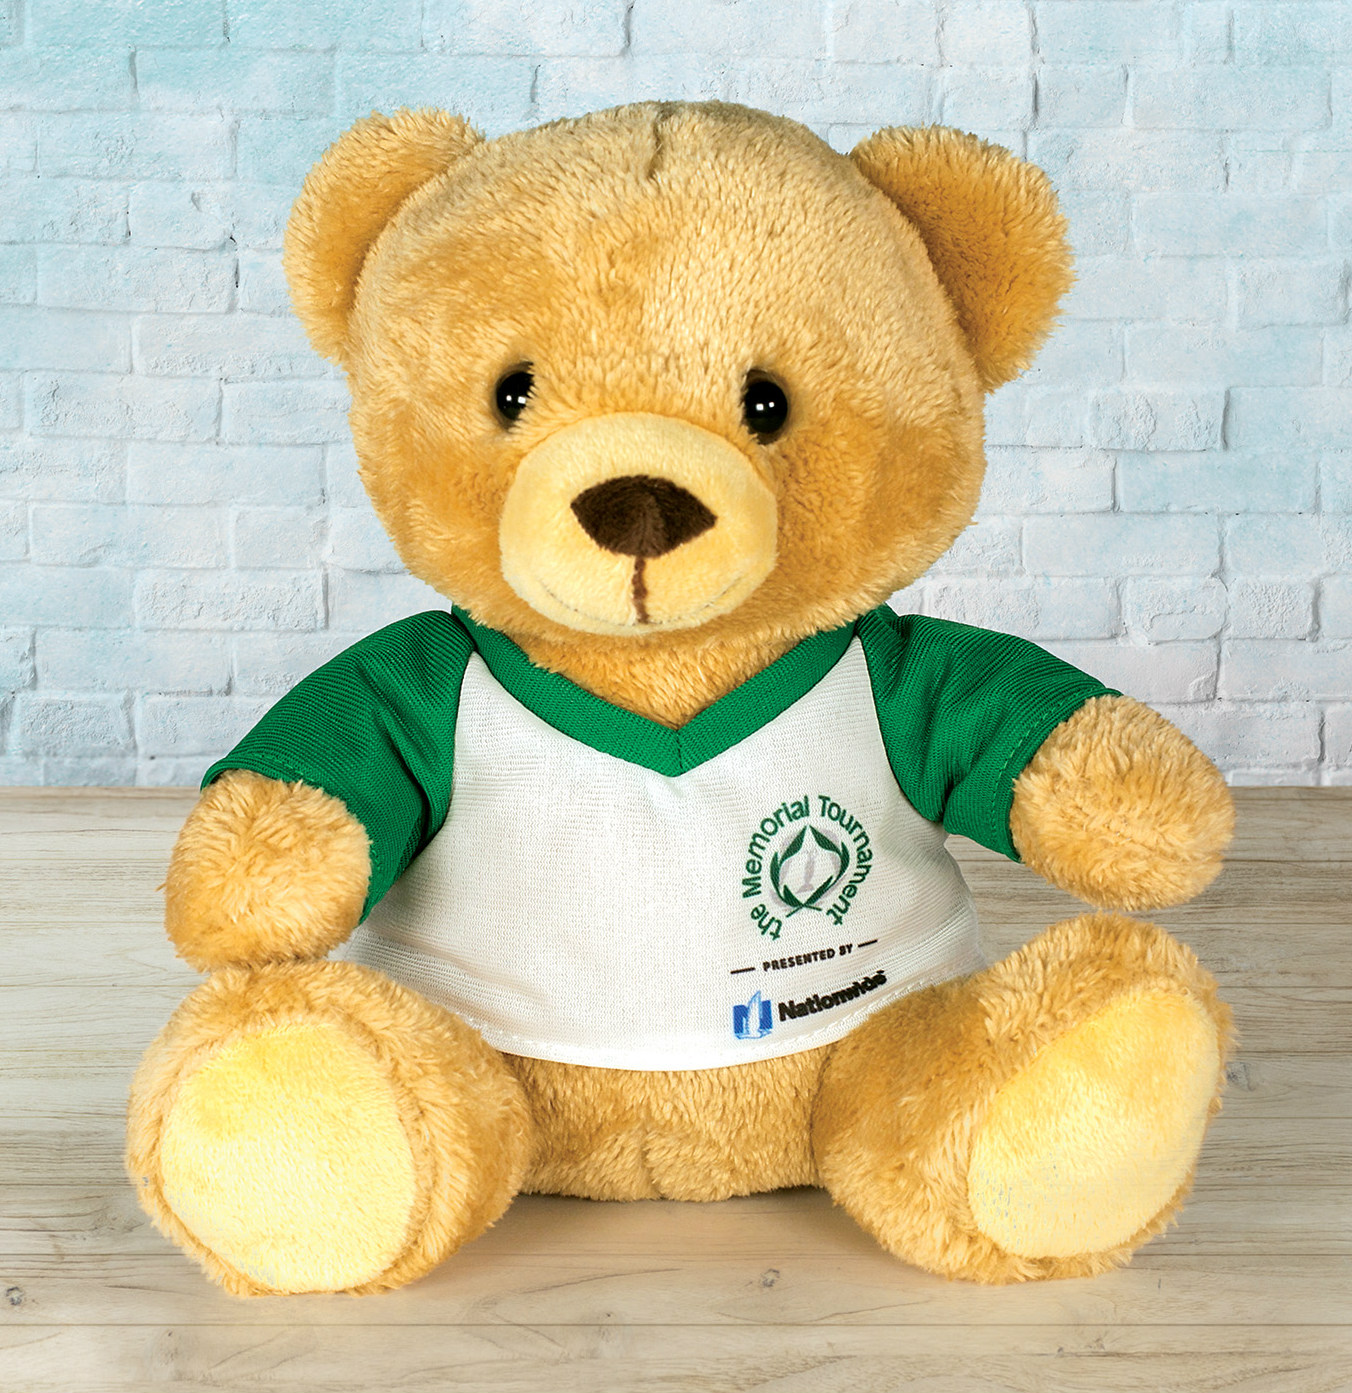 Memorial Tournament Bear for Children